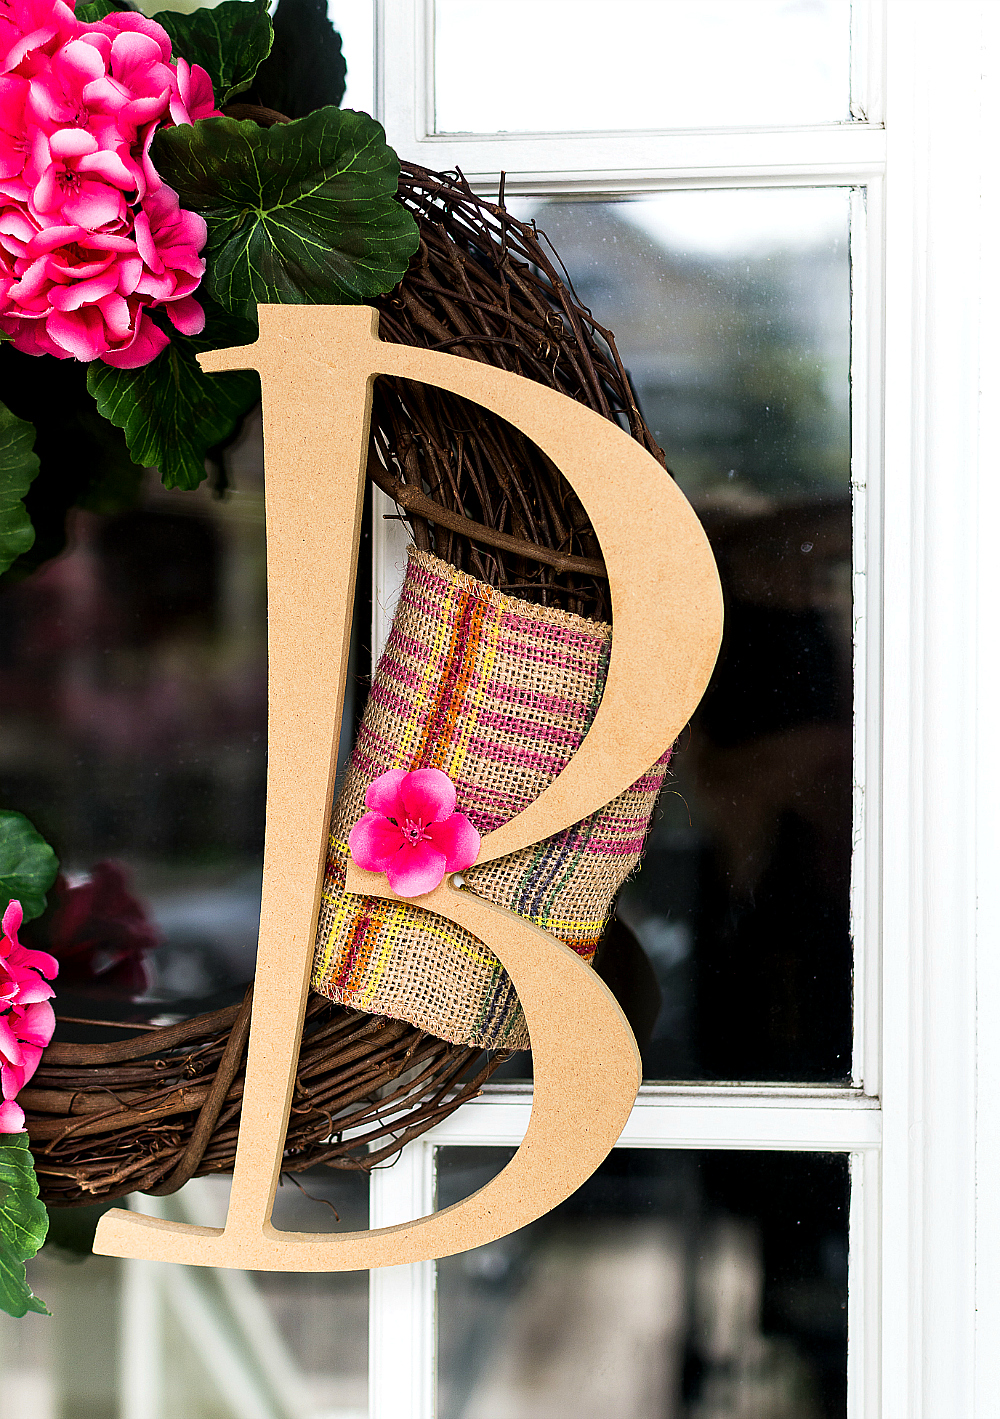 Monogram Wreath Ideas for Spring with Geraniums - DIY Tutorial